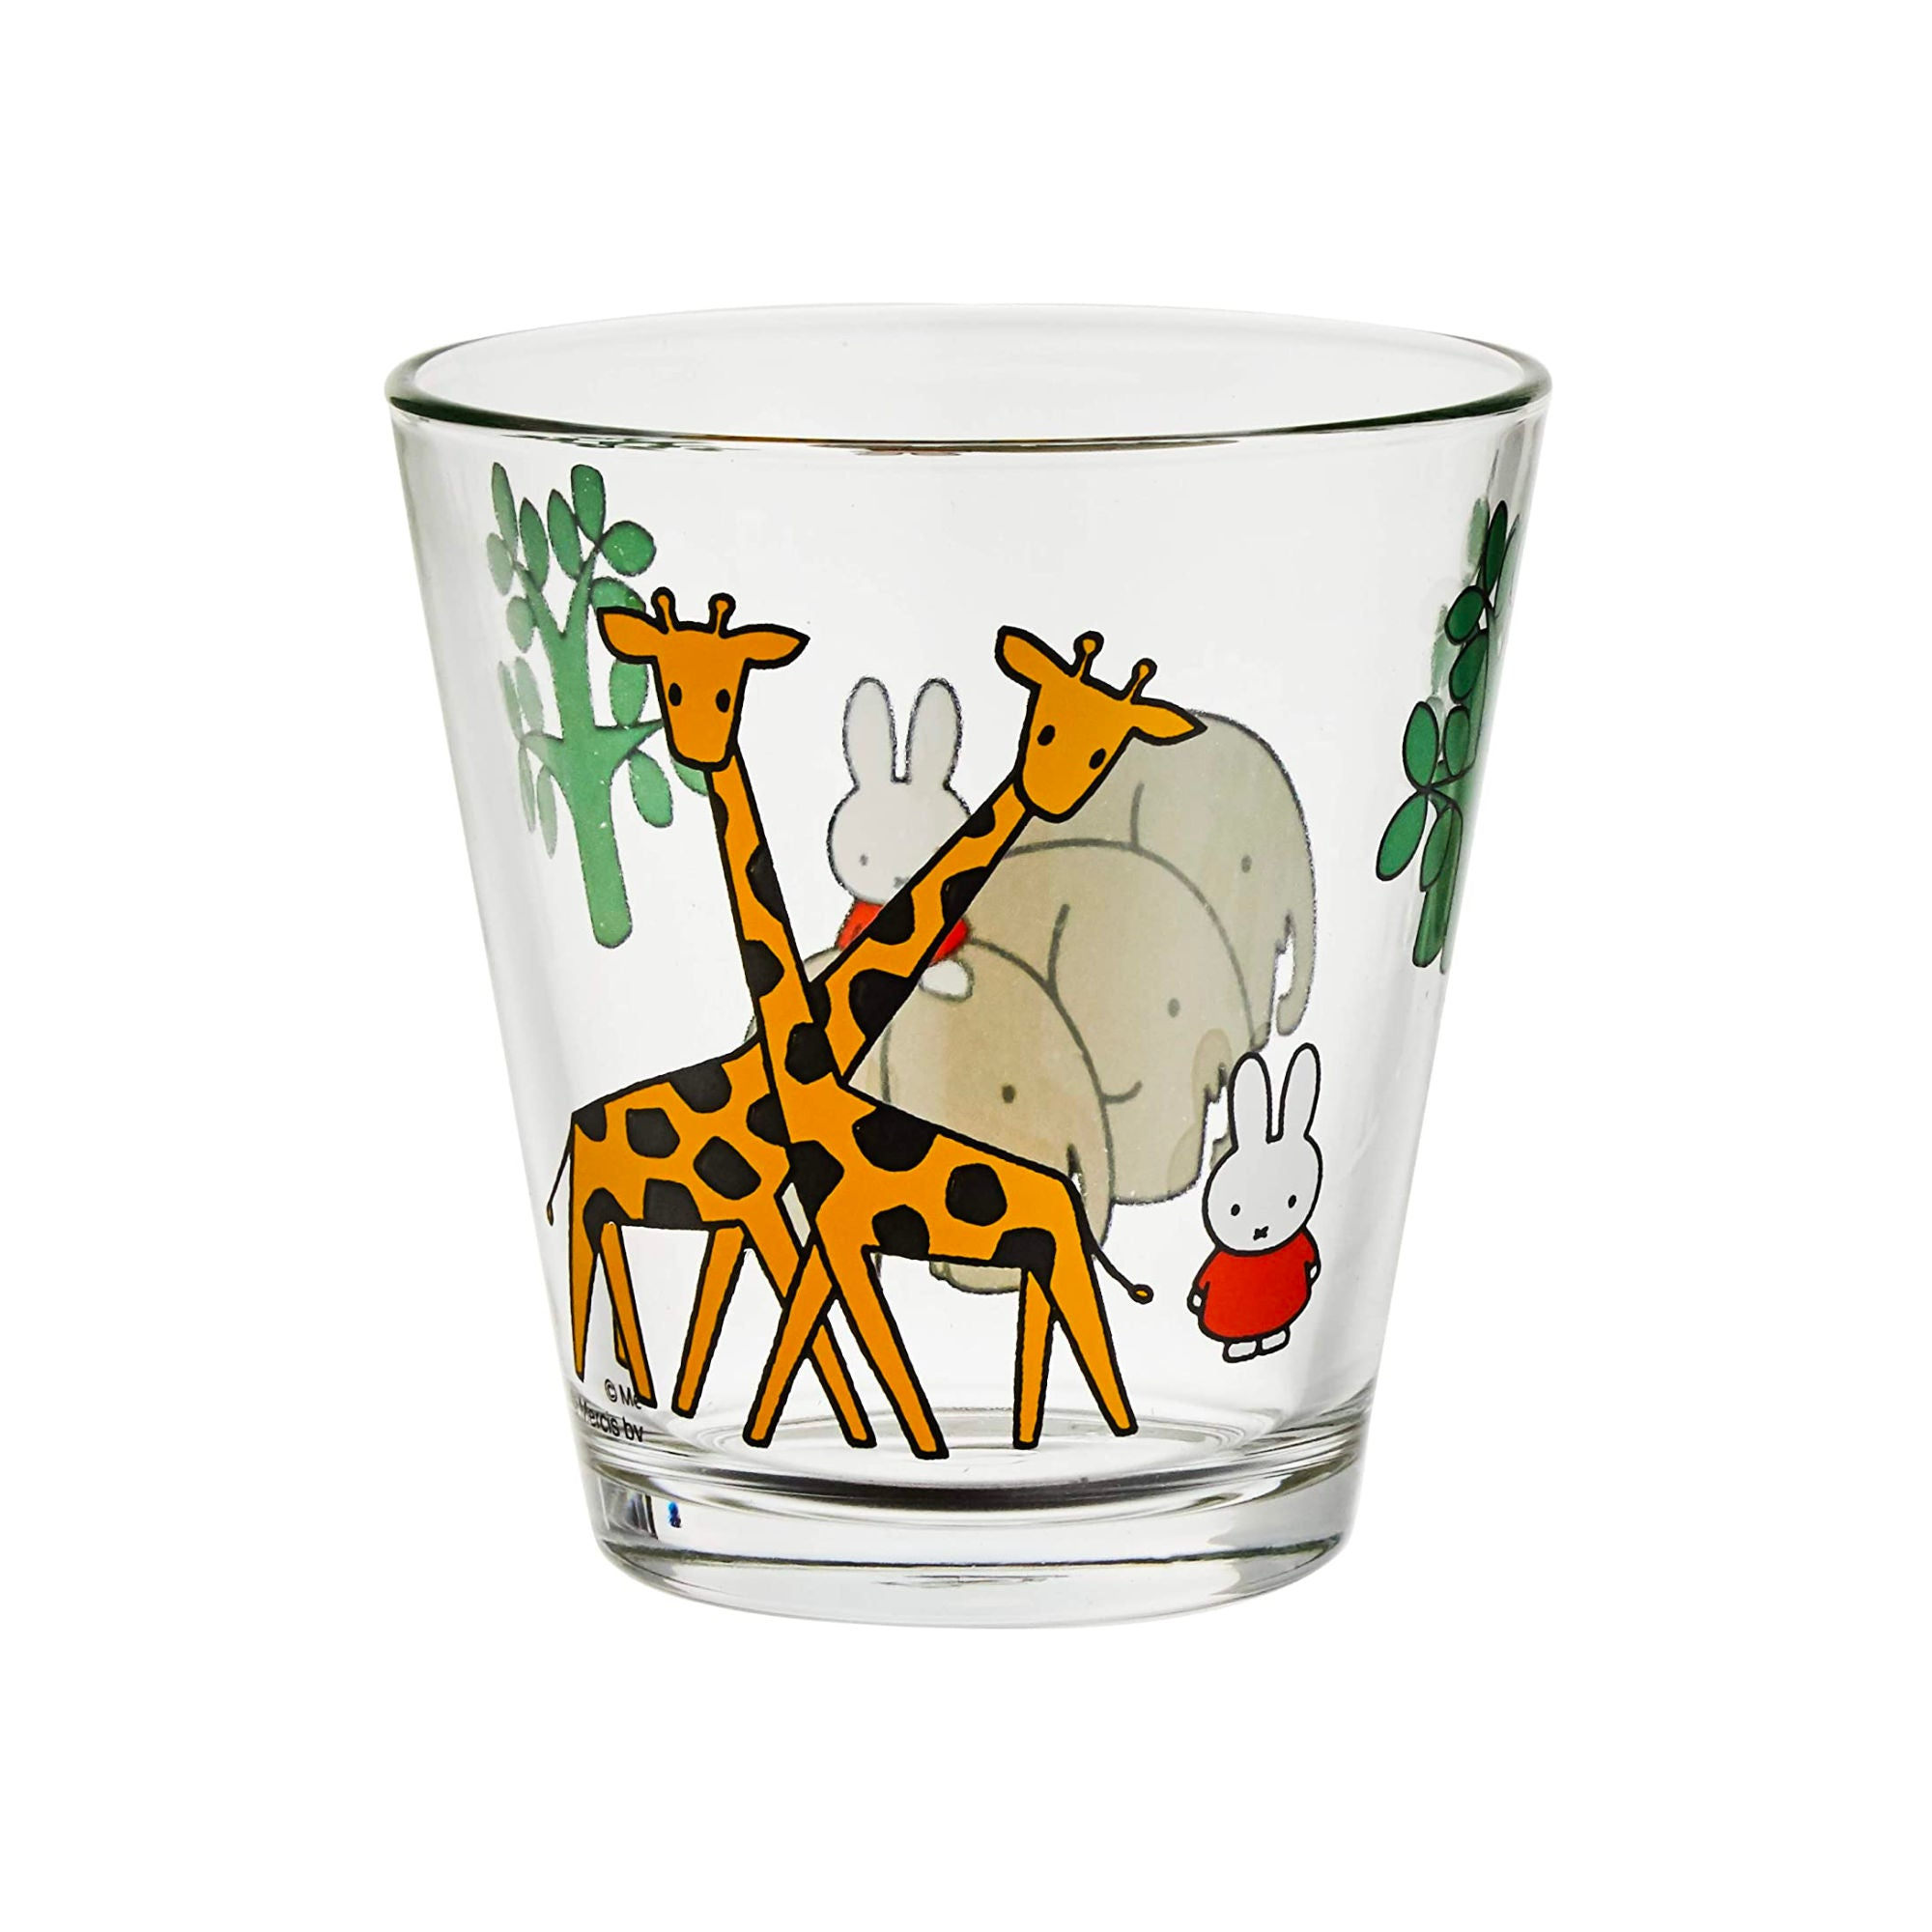 Dick Bruna x Space Joy Miffy Drinking Glass 250ml , Safari